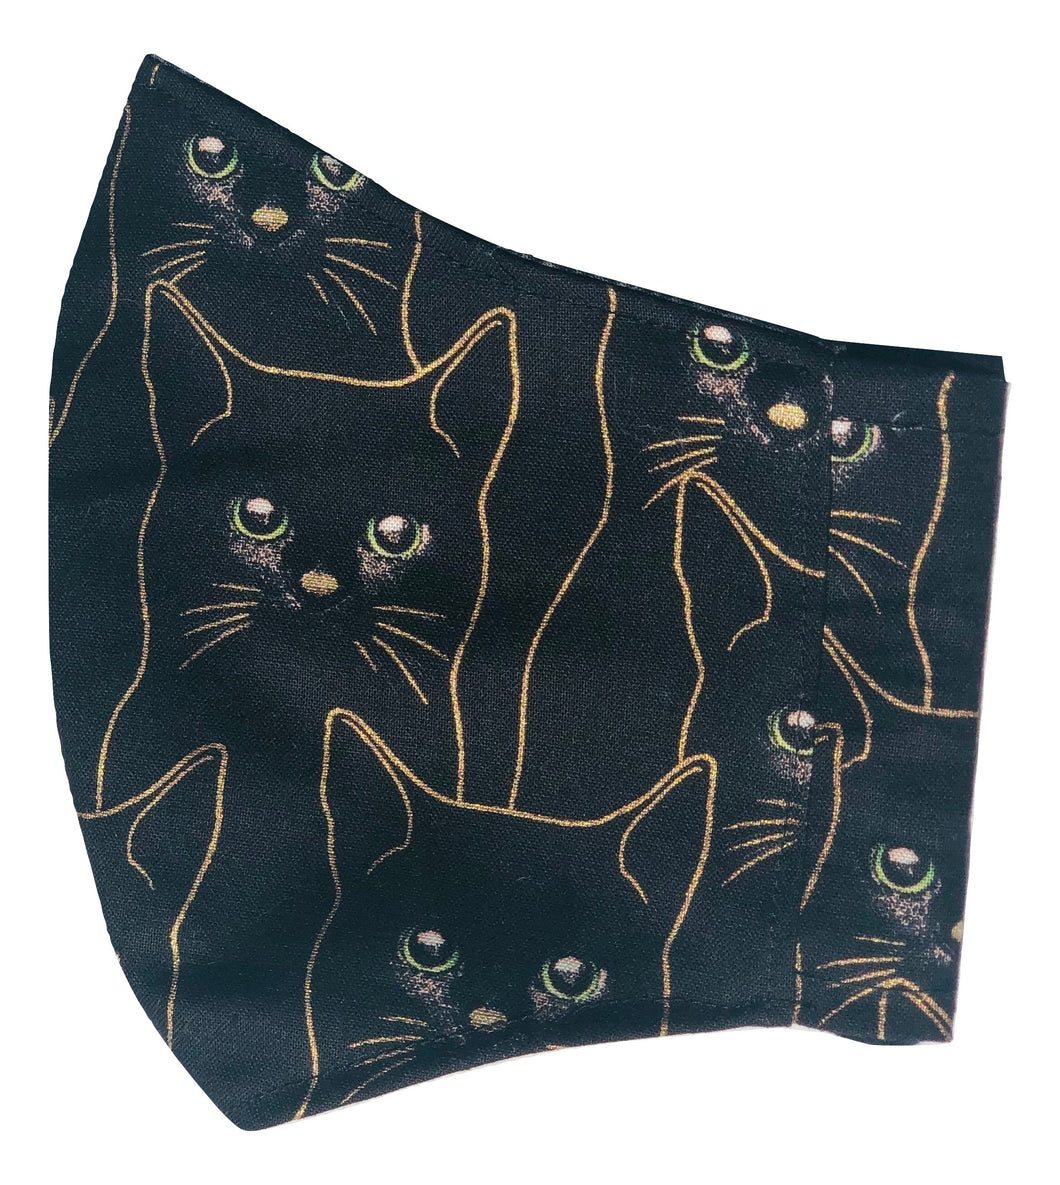 Adult Face Cover | Black & Gold Cat - The Crafty Artisans